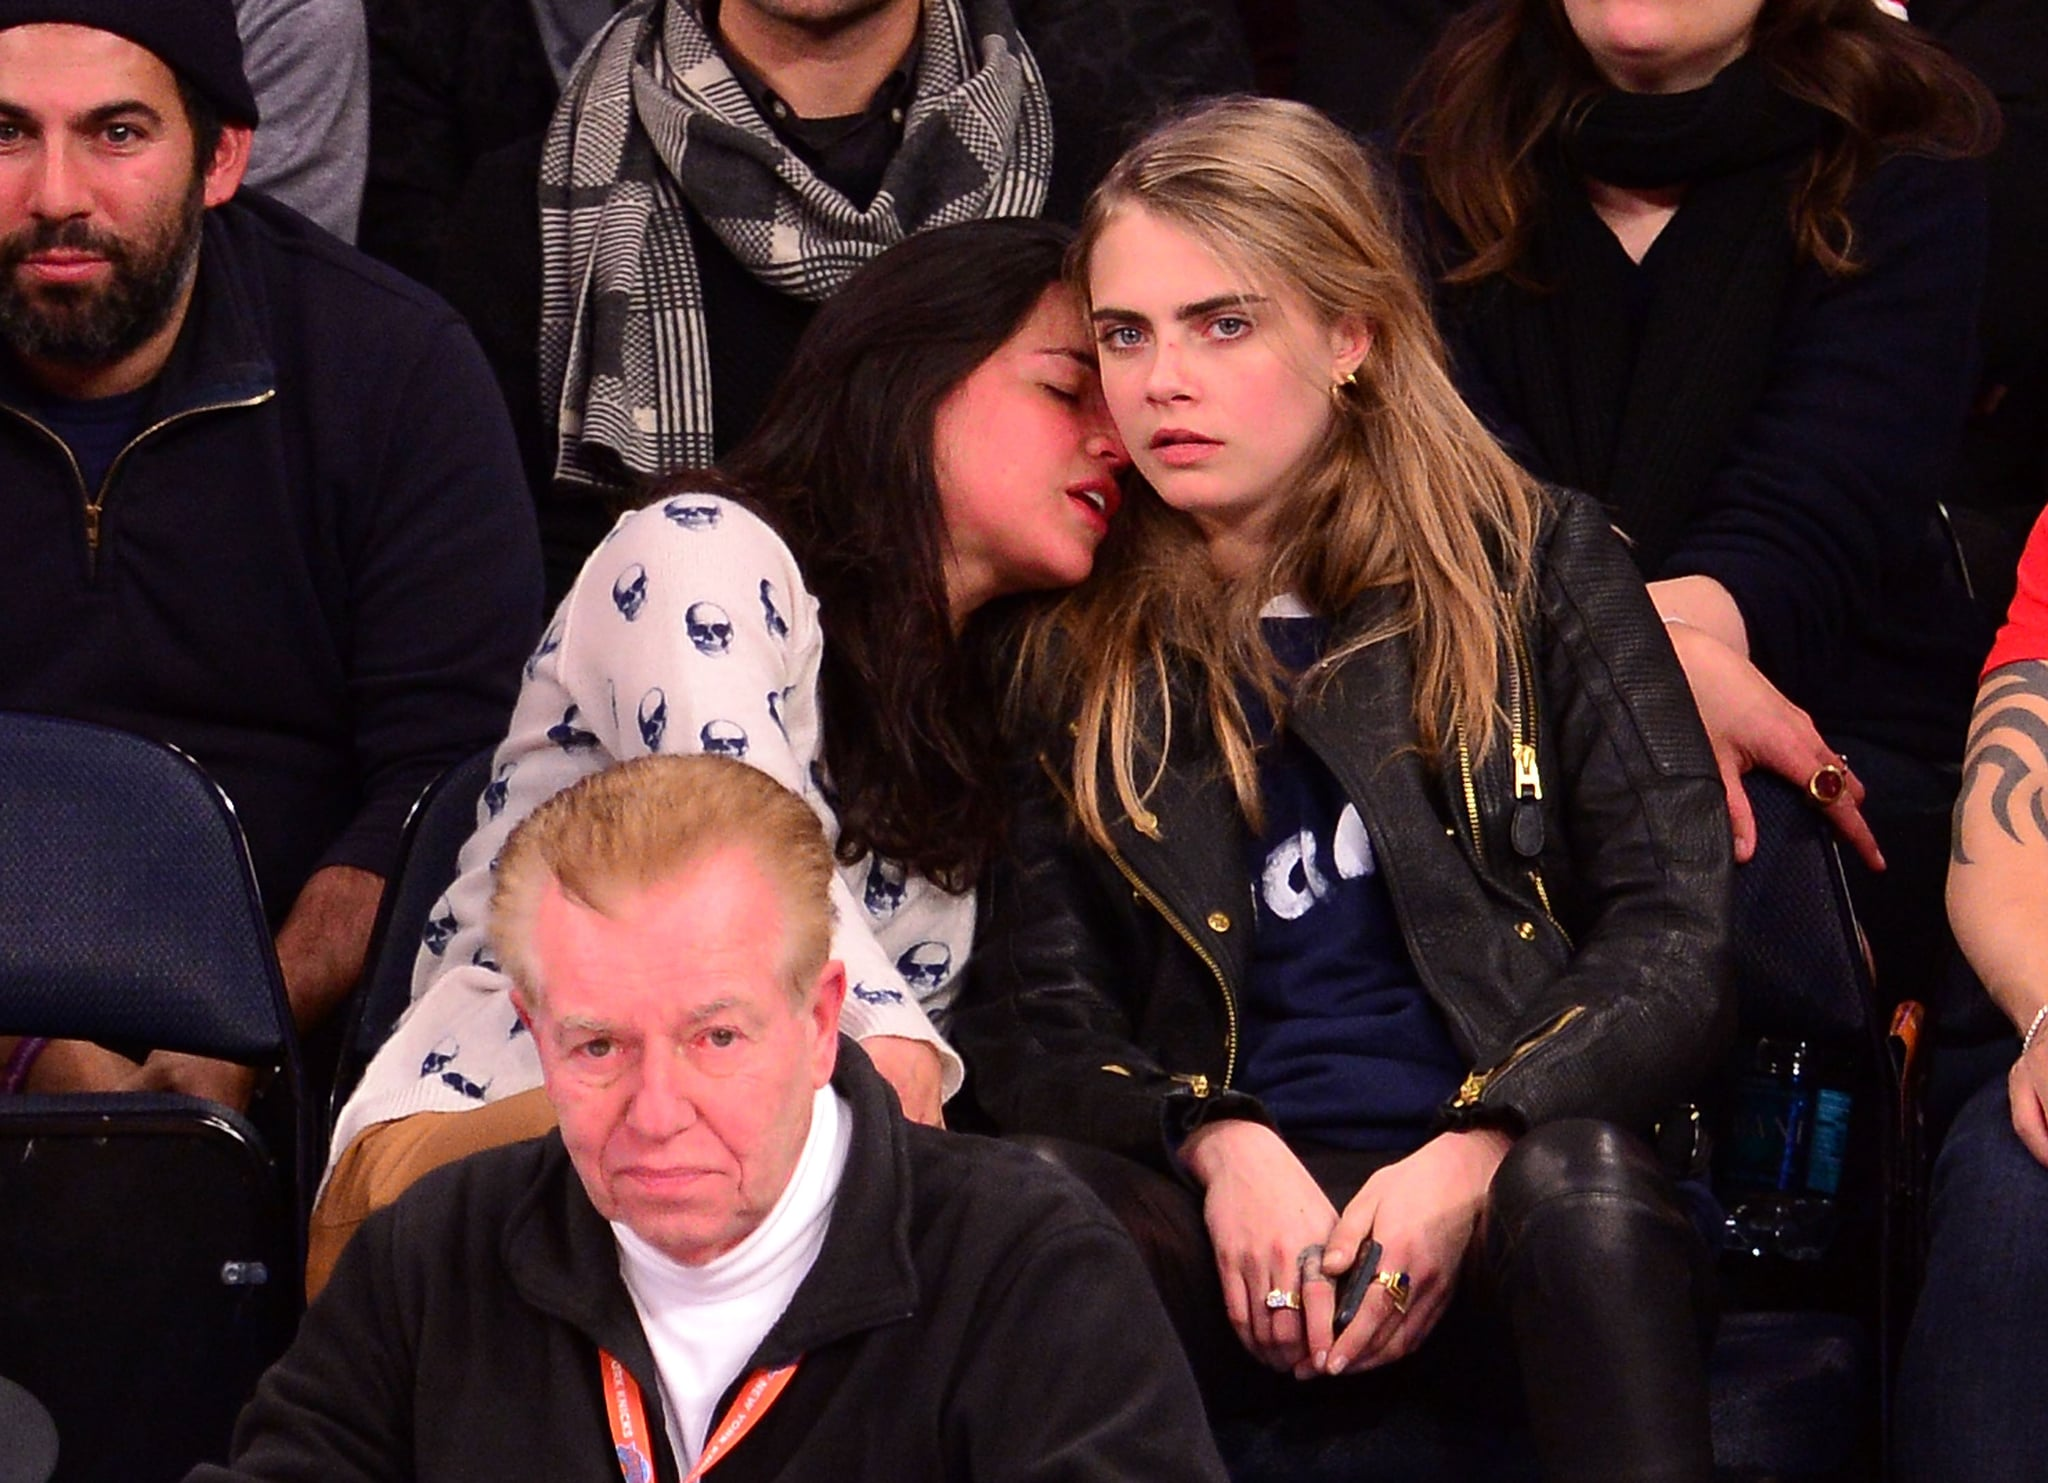 Michelle Rodriguez Snuggled With Cara Delevingne At A Knicks Game In Celebrities Caught Locking Lips On The Kiss Cam Popsugar Celebrity Photo 22